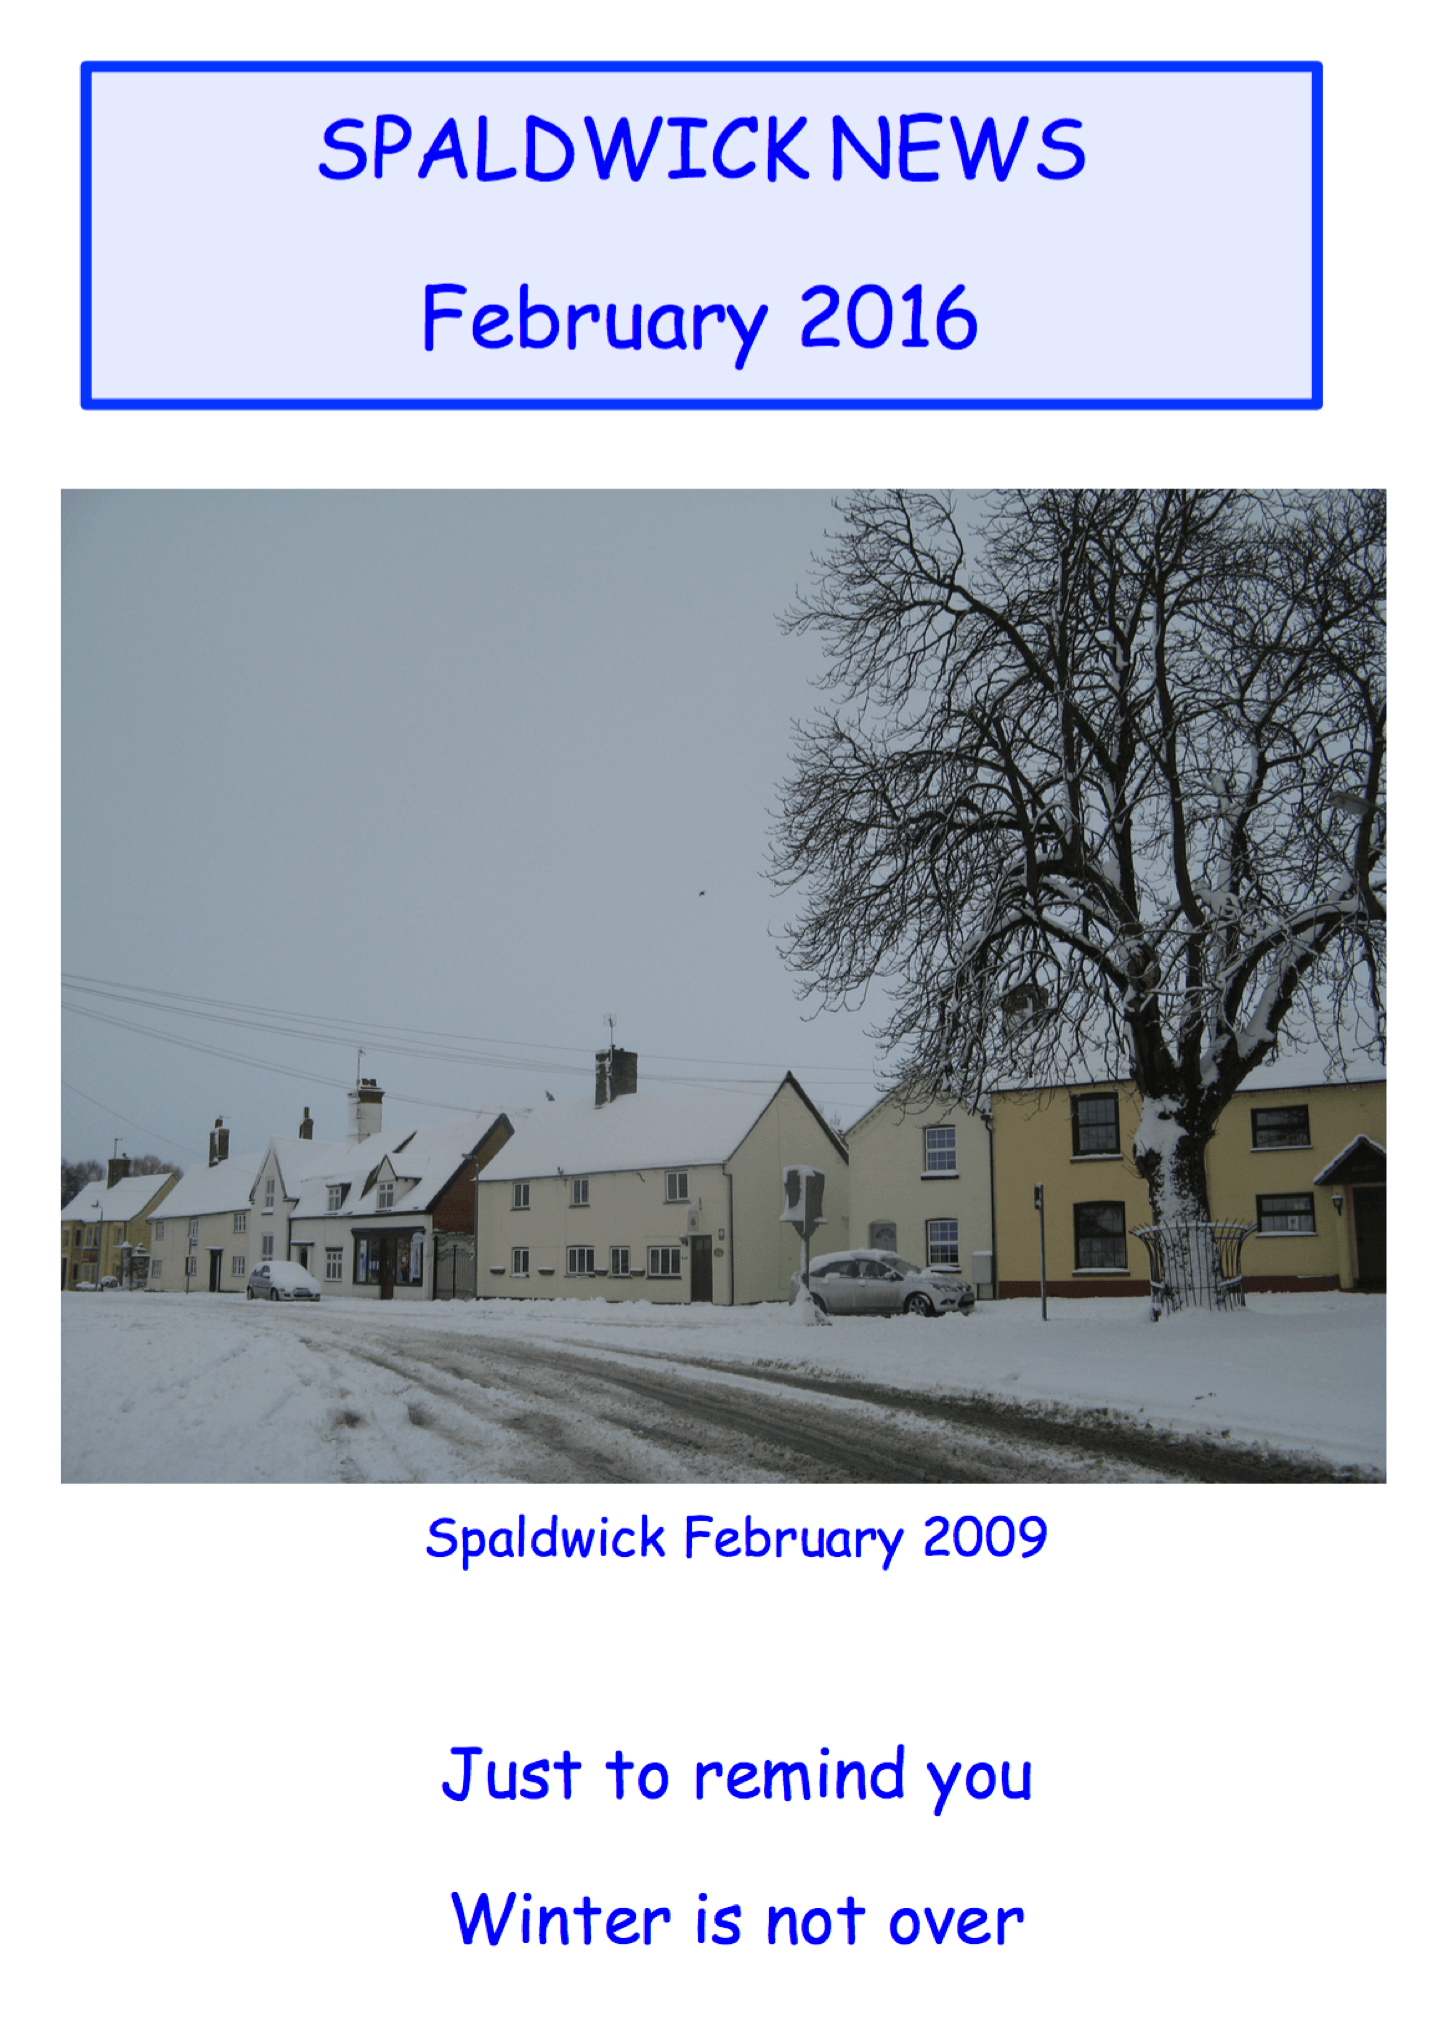 Spaldwick News